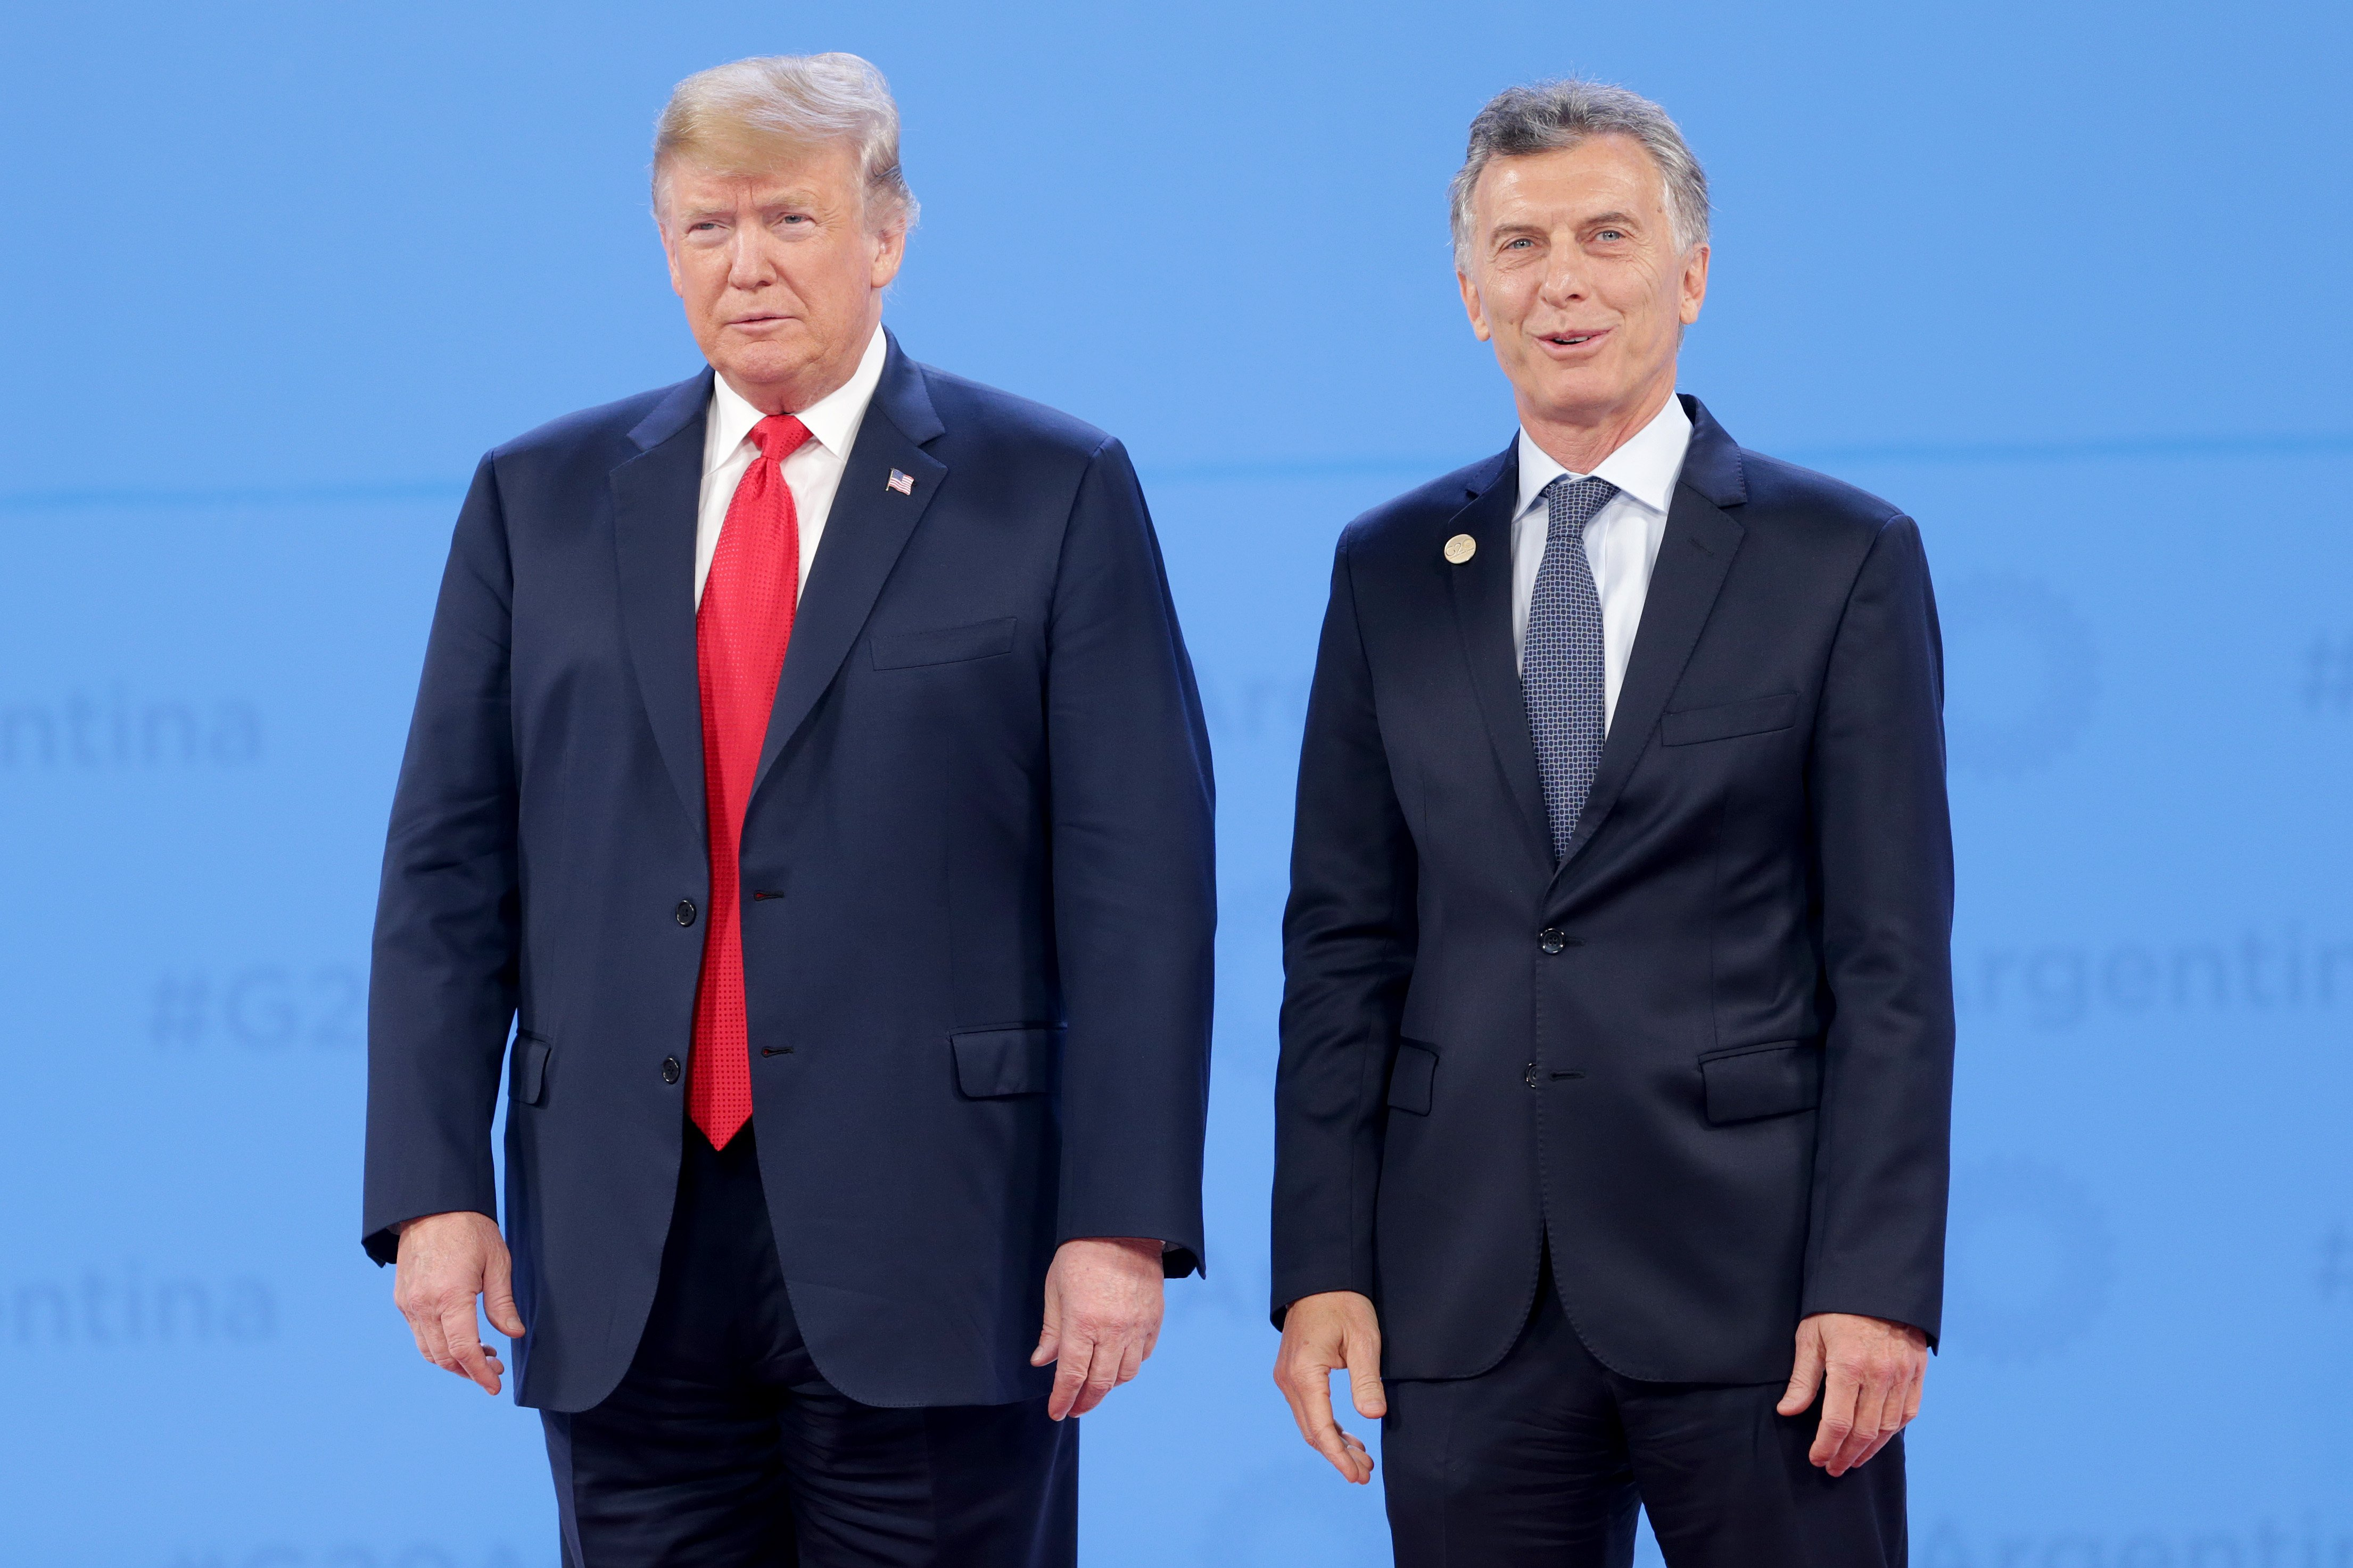 U.S. President Donald Trump and President of Argentina Mauricio Macri at the 2018 G20 Summit in Buenos Aires | Photo: Getty Images